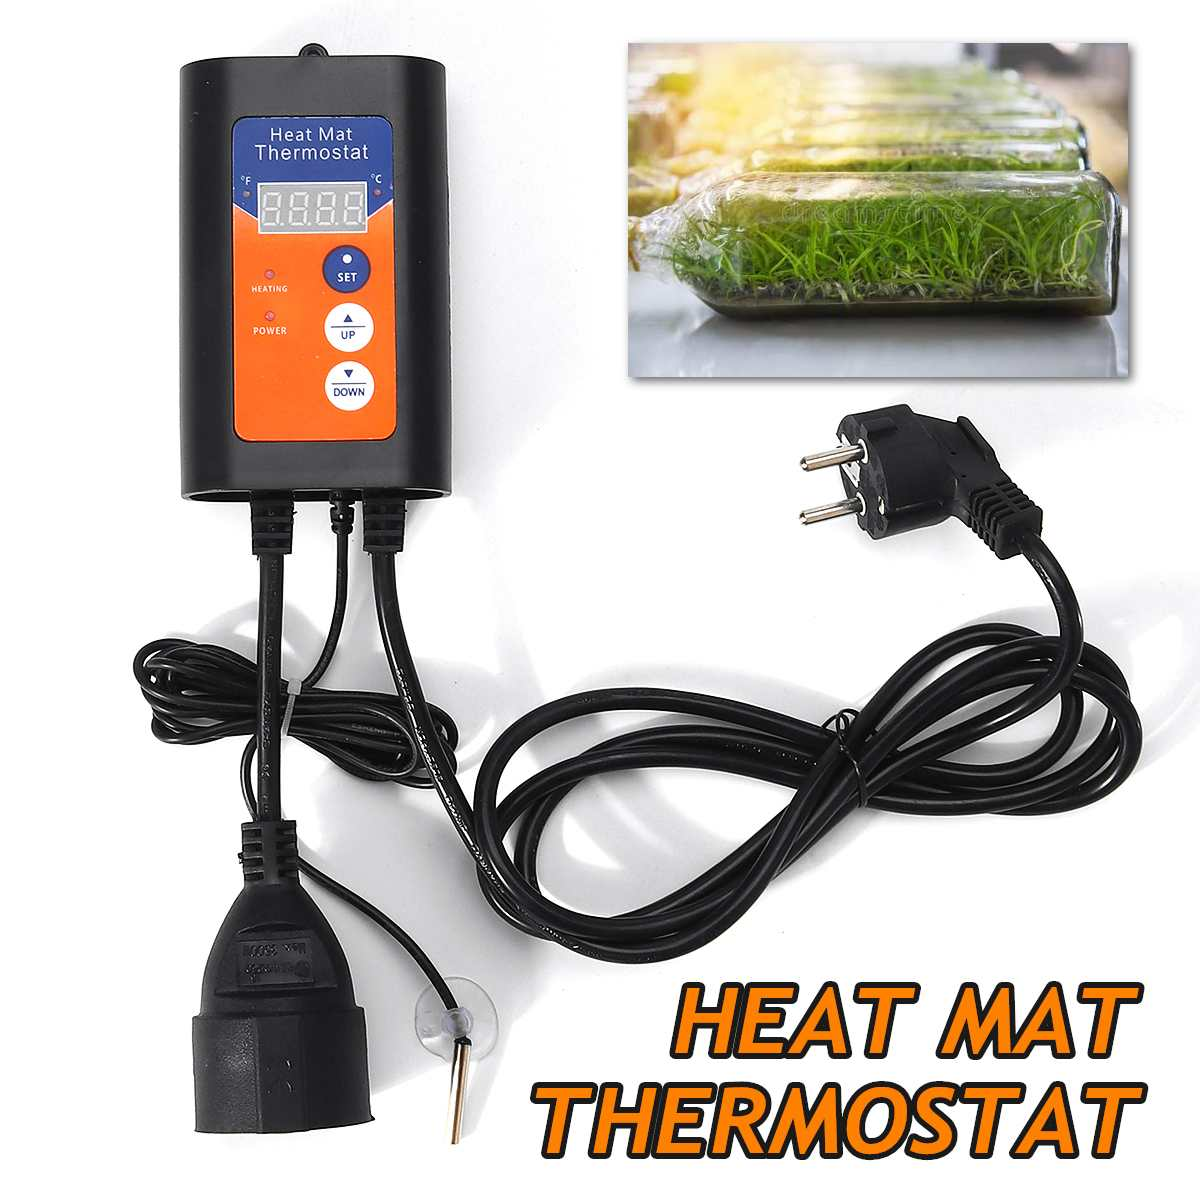 1000W 230V Digital Heat Mat Thermostat Temperature Controller For Hydroponic Plants Seed Germination Reptiles Pet Supplies